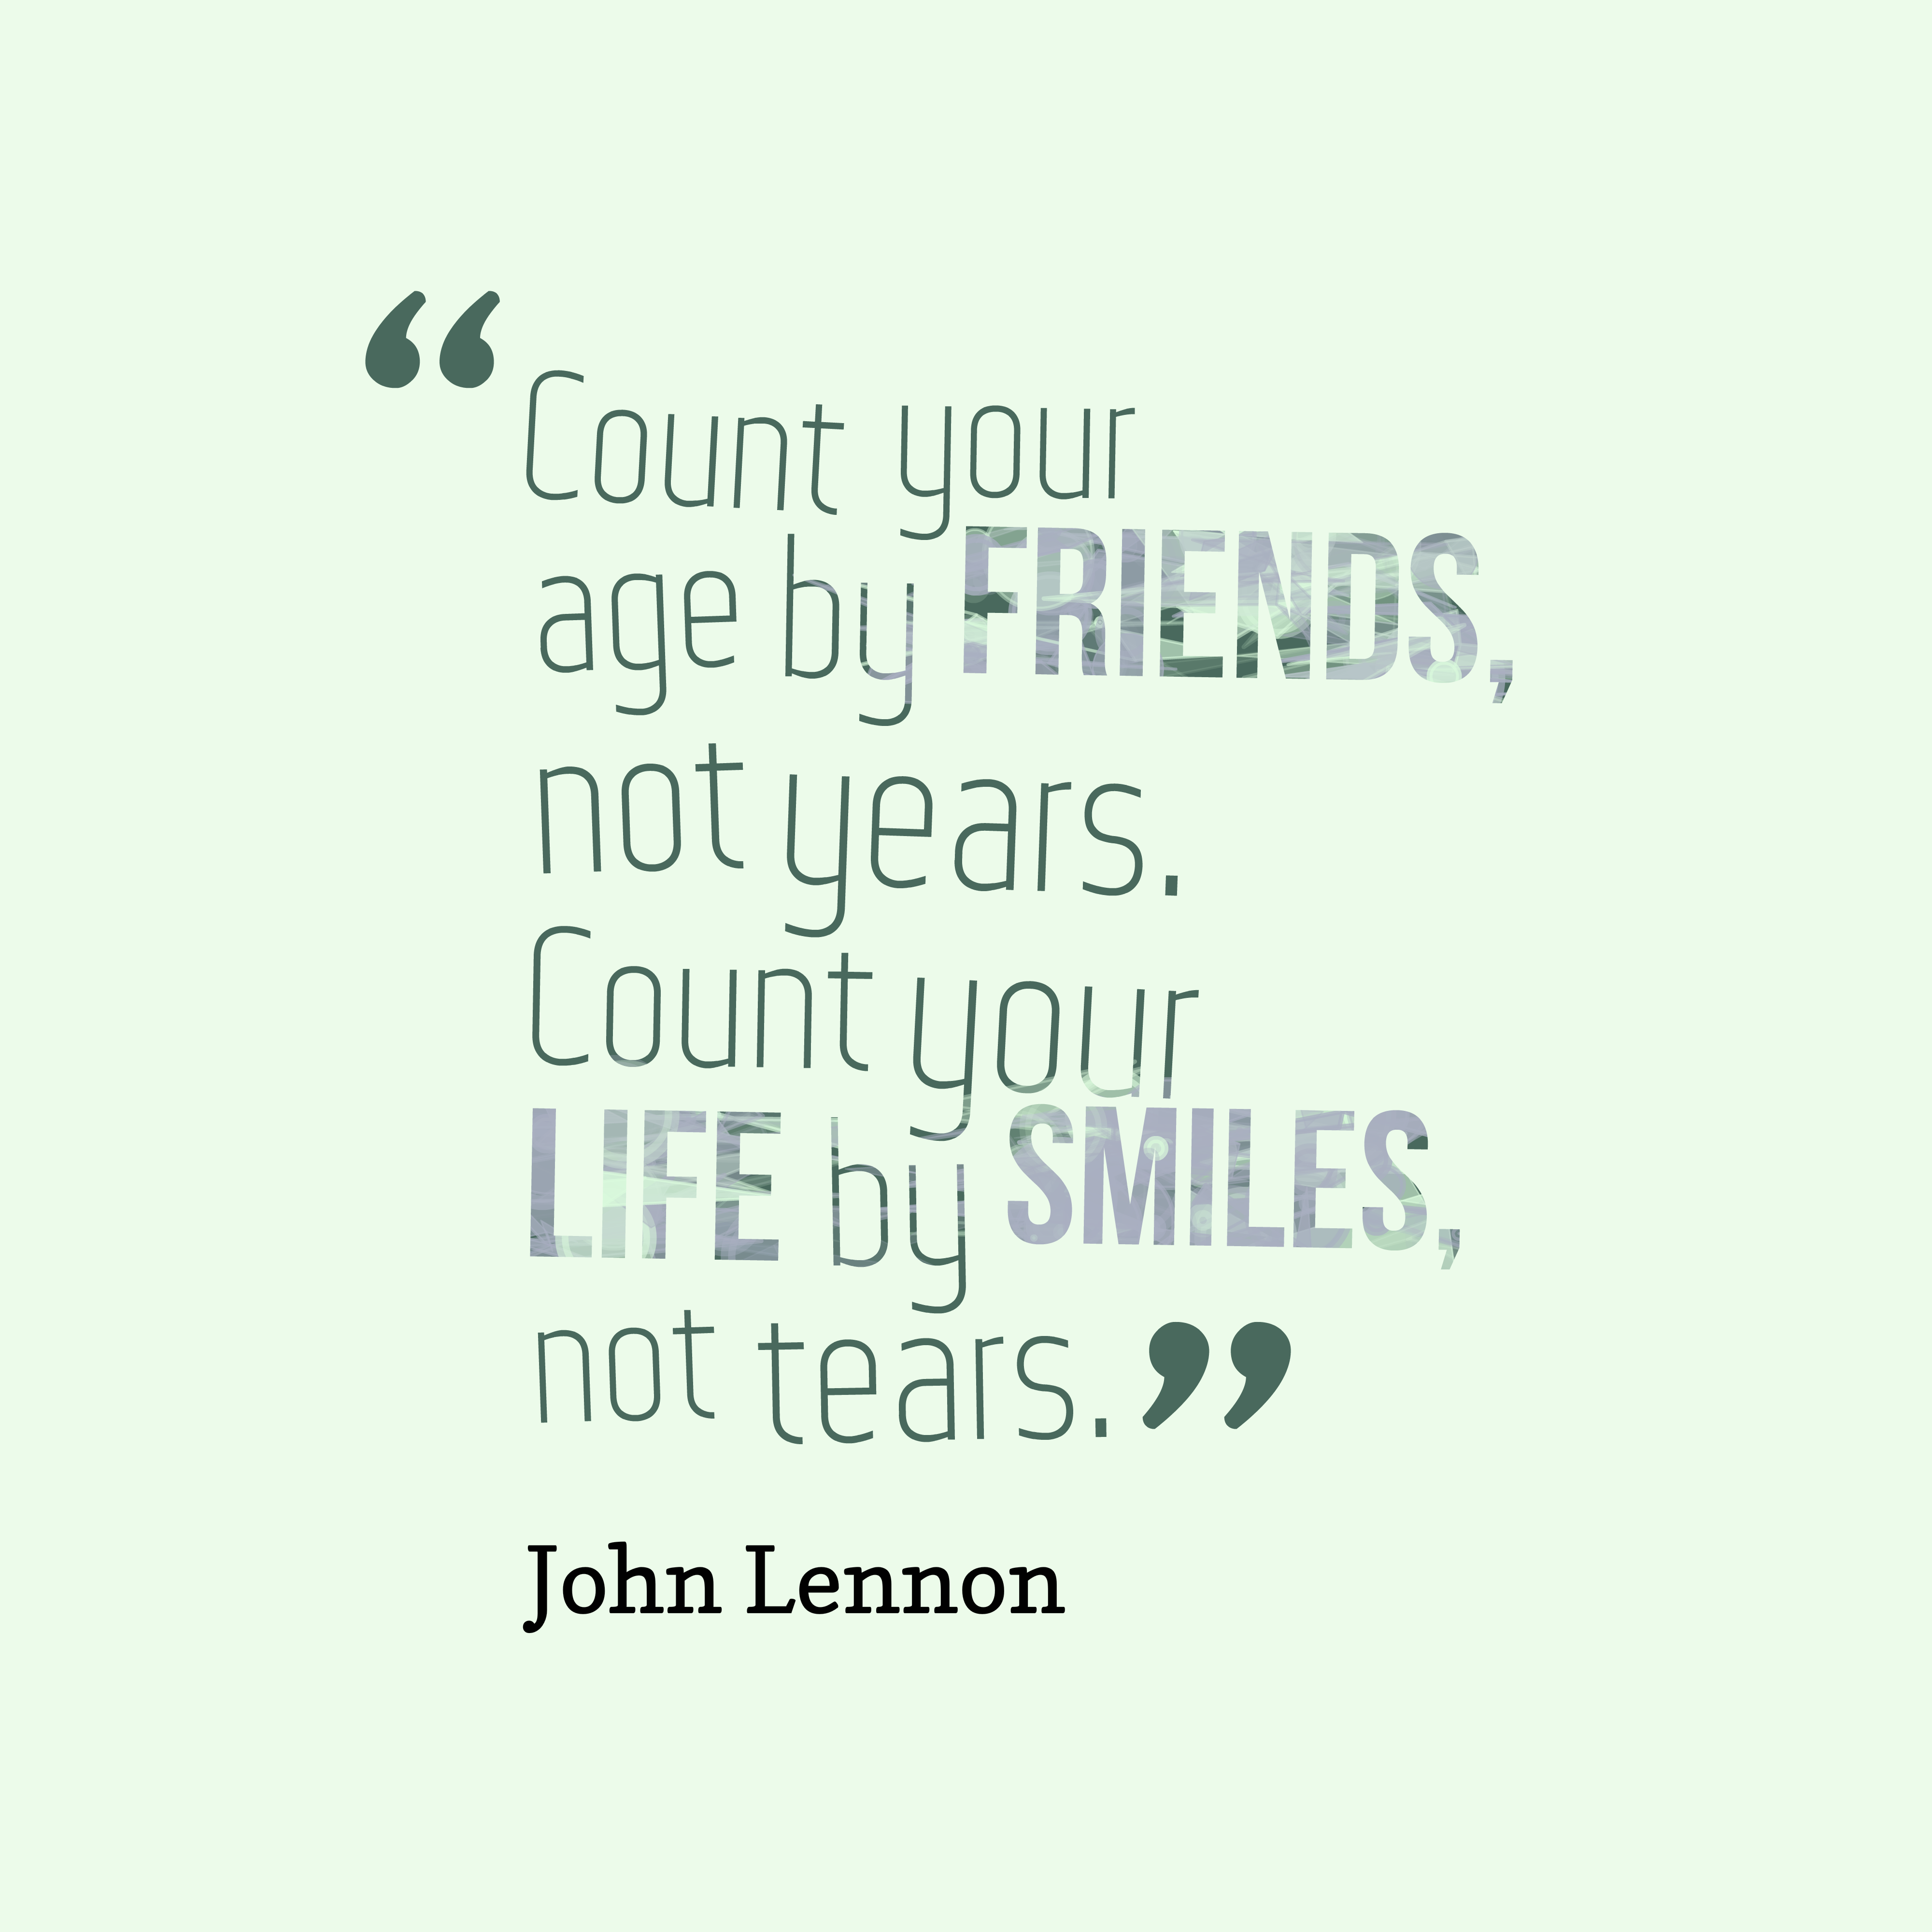 Quotes image of Count your age by friends, not years. Count your life by smiles, not tears.